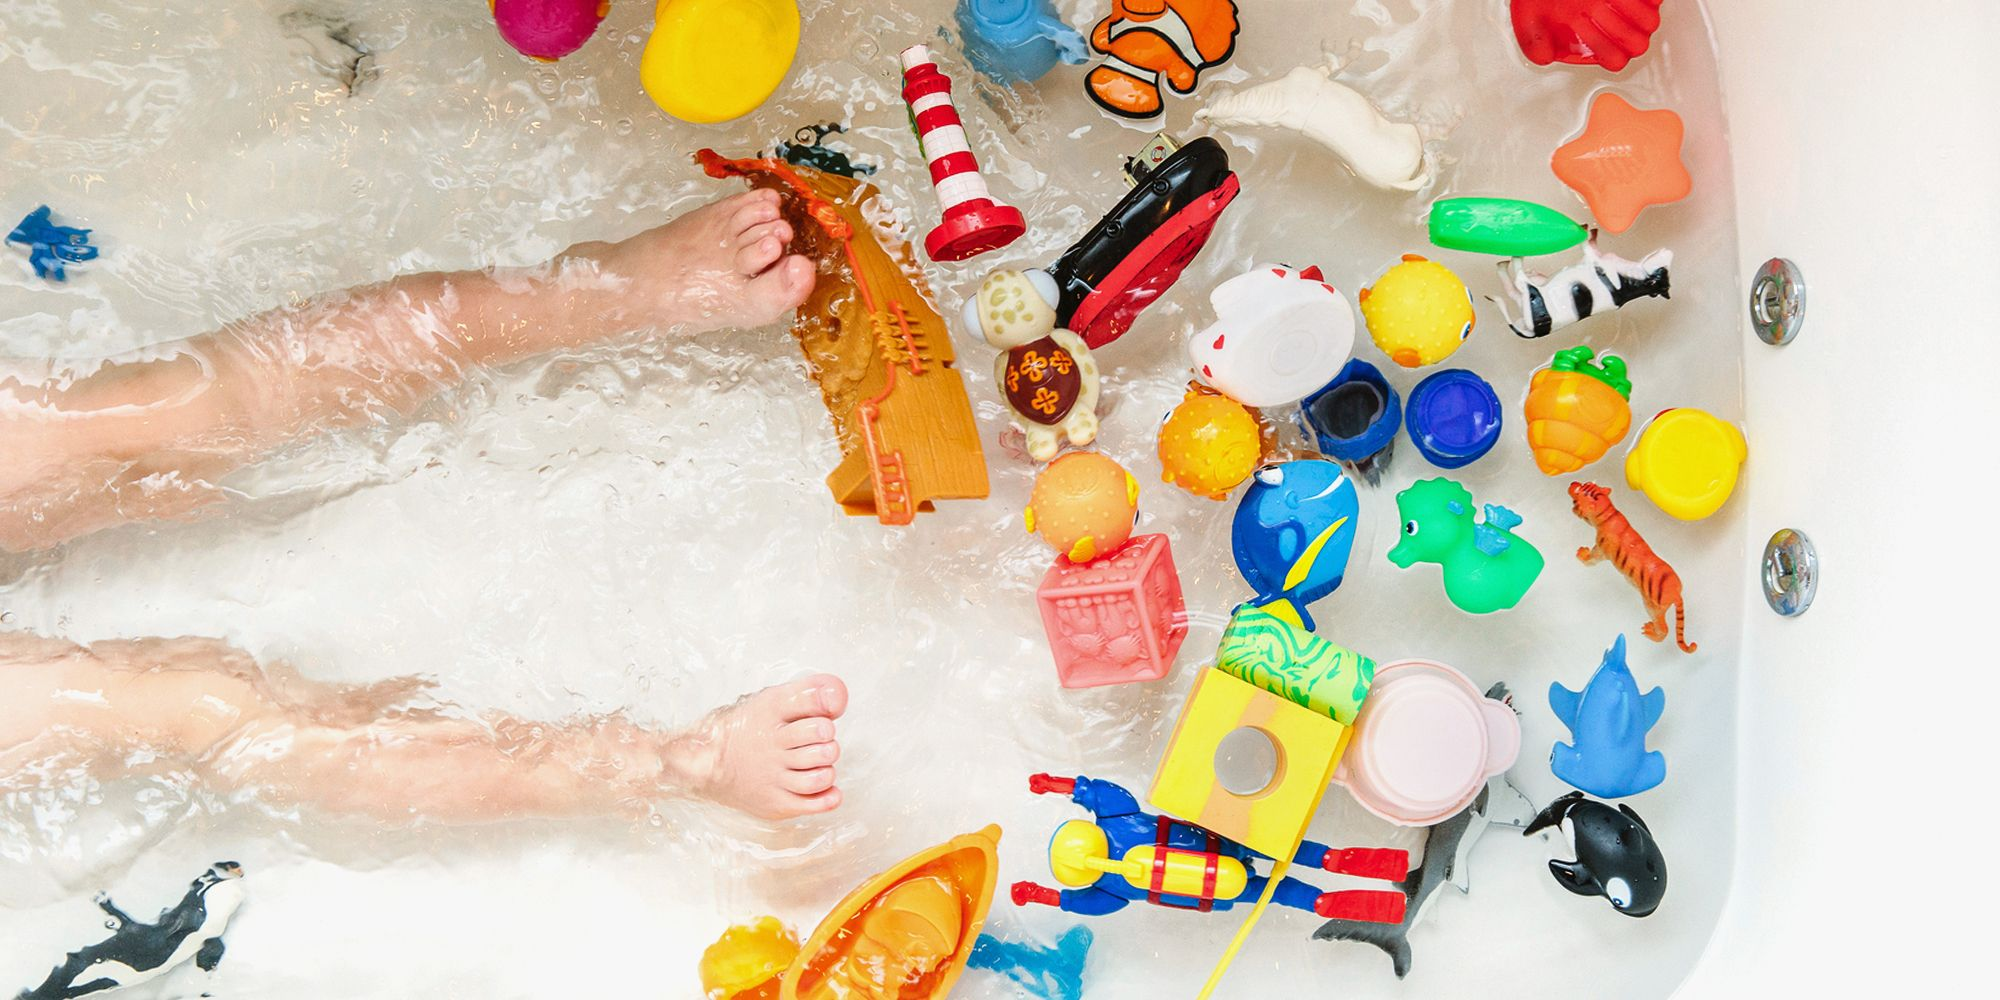 15 Best Bath Toys for Babies and Toddlers in 2018 - Fun and Safe ...